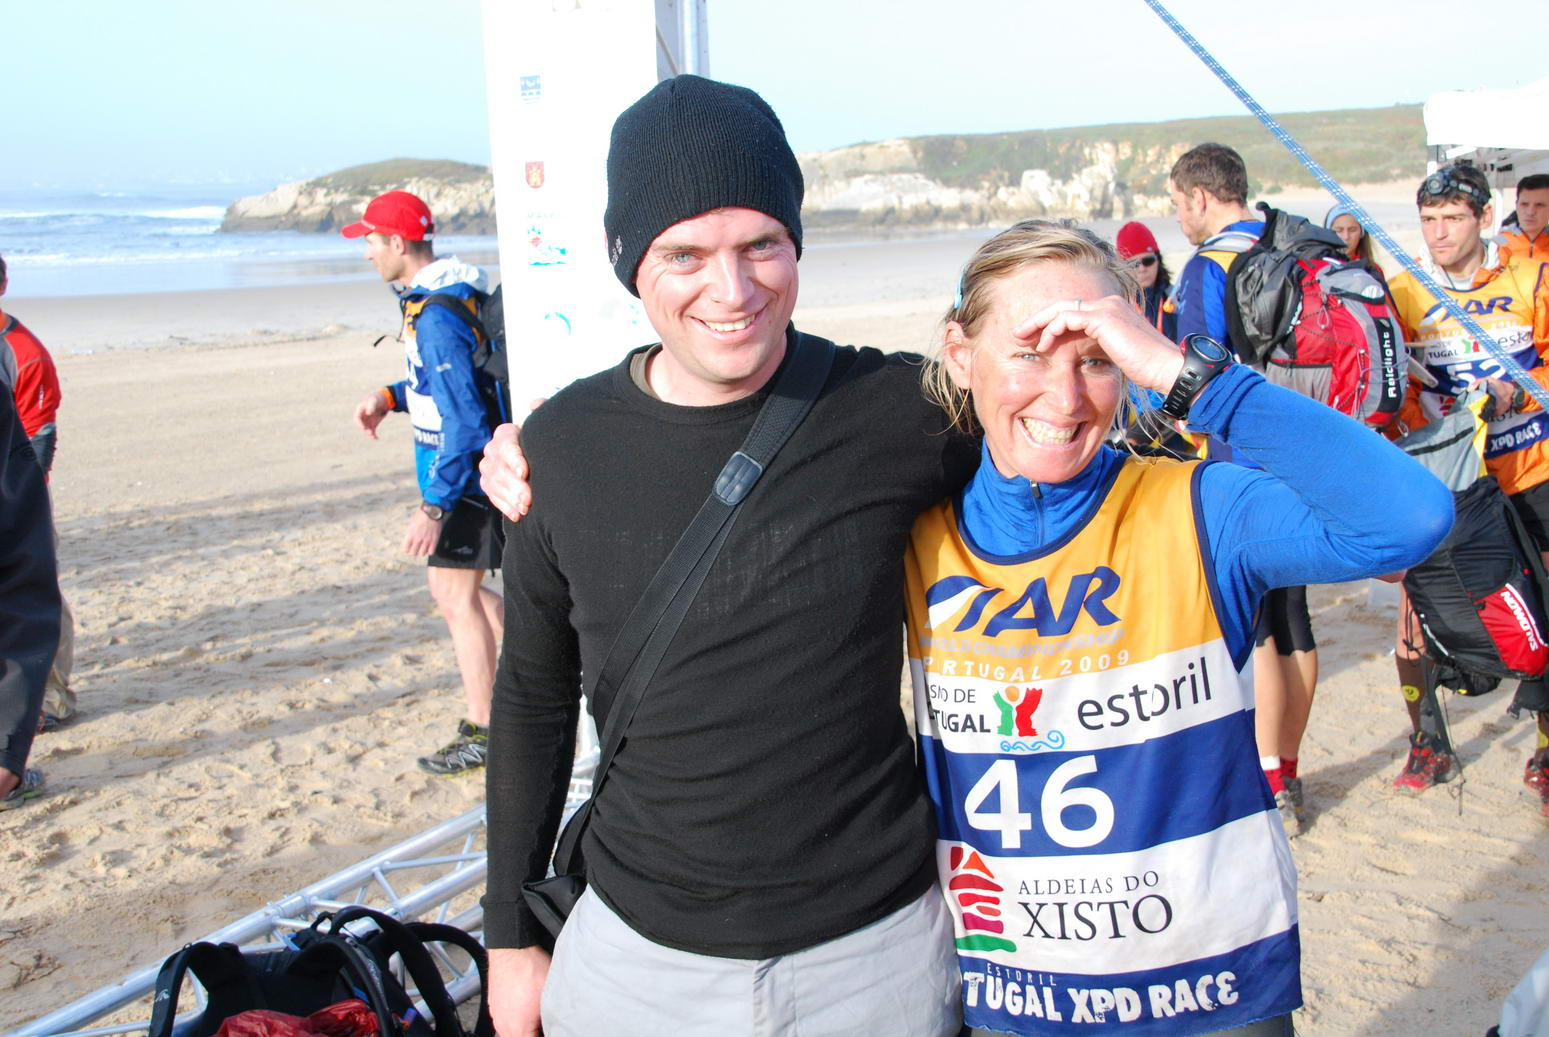 Cris and Mona at the finish (Portugal ARWC 2009)